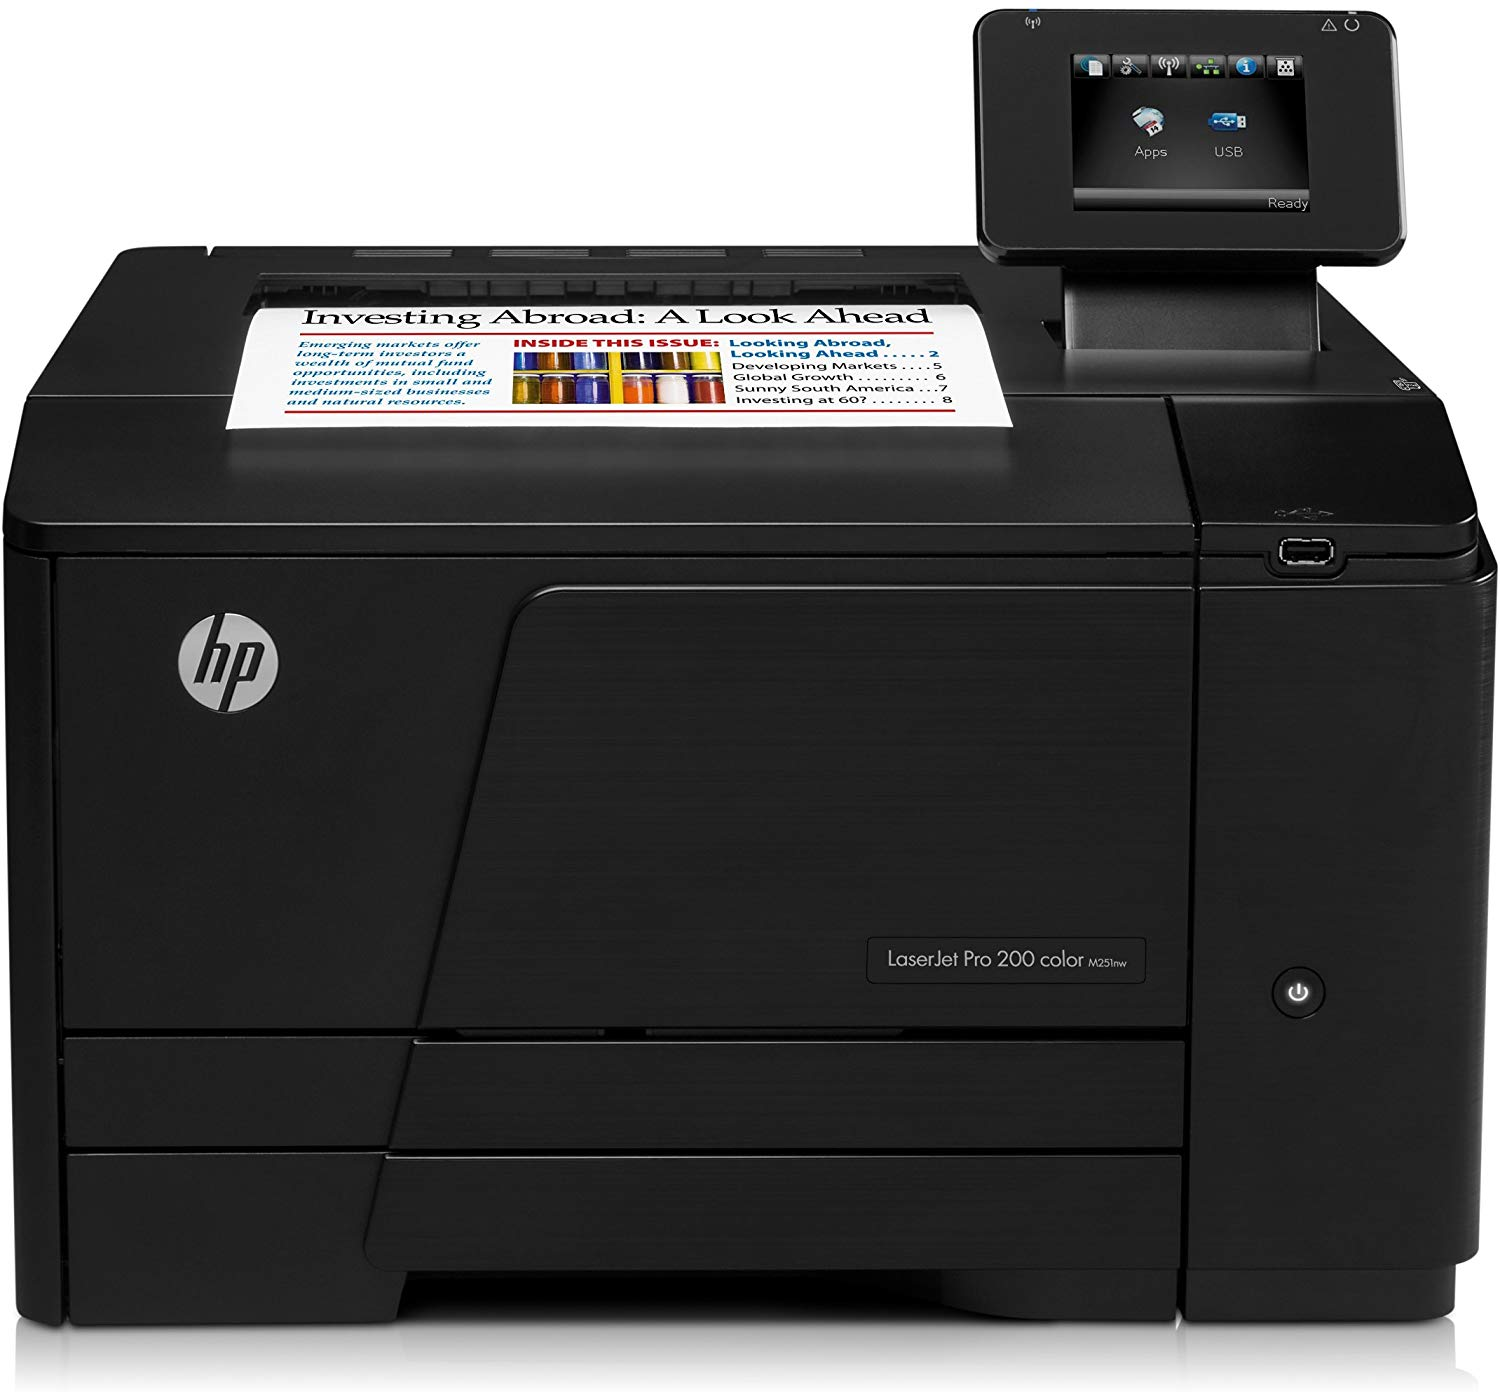 HP LaserJet Pro 200 M251nw Wireless Color Printer (Old Version)